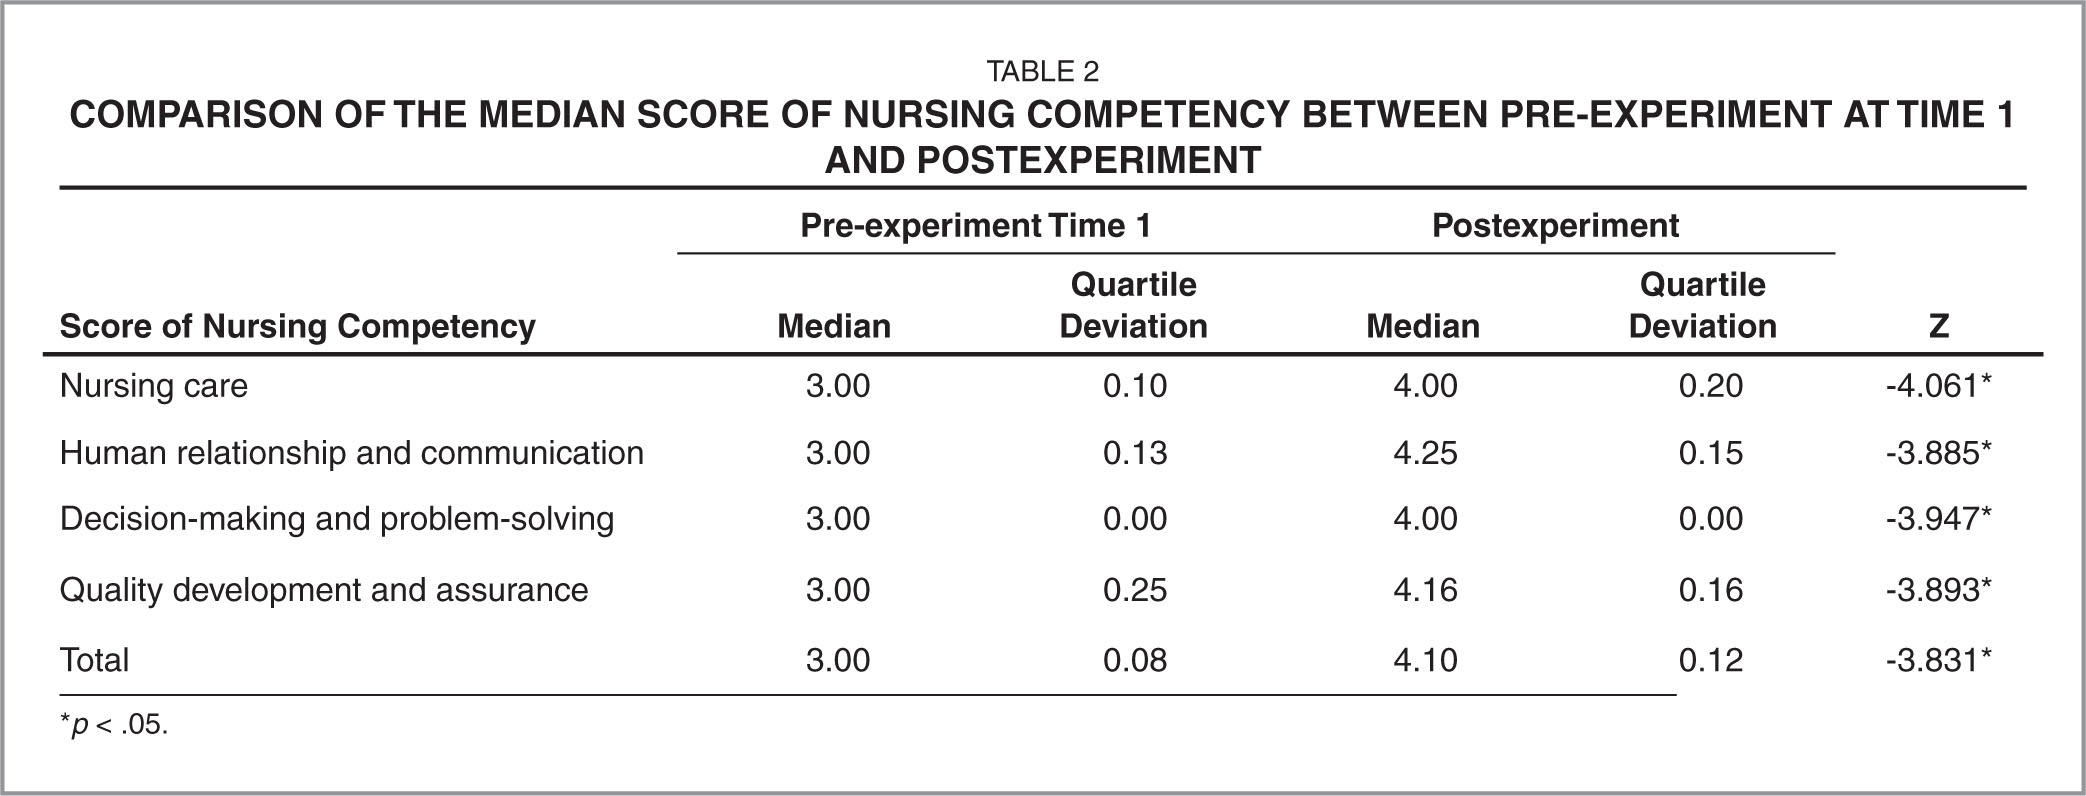 Comparison of the Median Score of Nursing Competency Between Pre-Experiment at Time 1 and Postexperiment